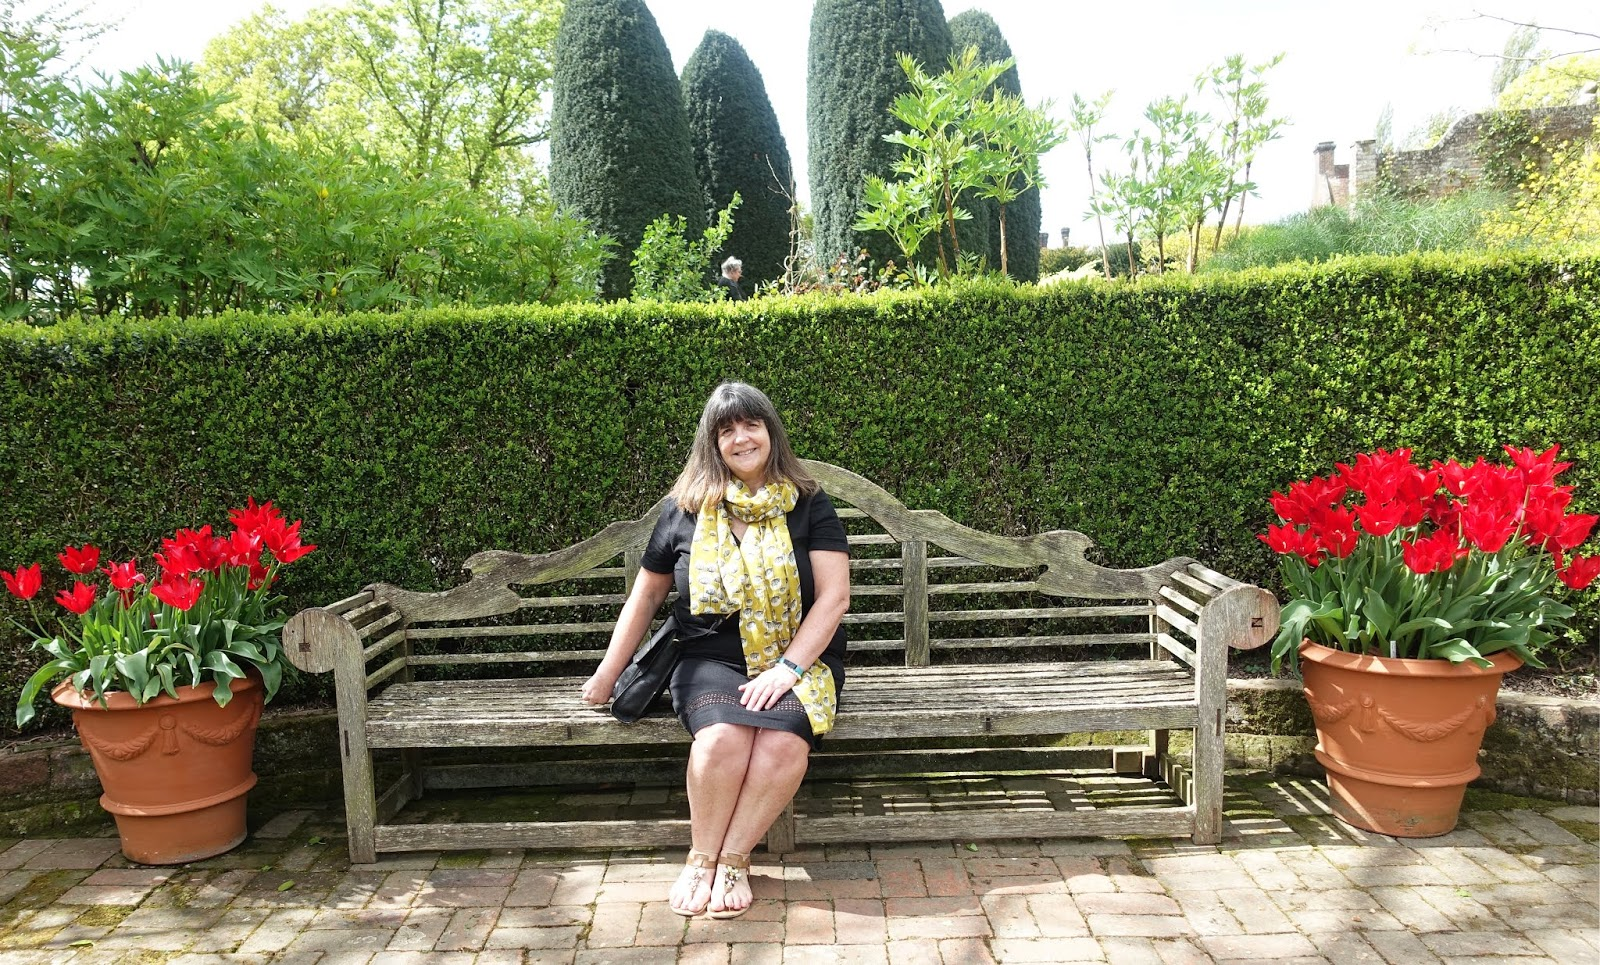 Woman on bench flanked by containers of red tulips at Sissinghurst Castle garden